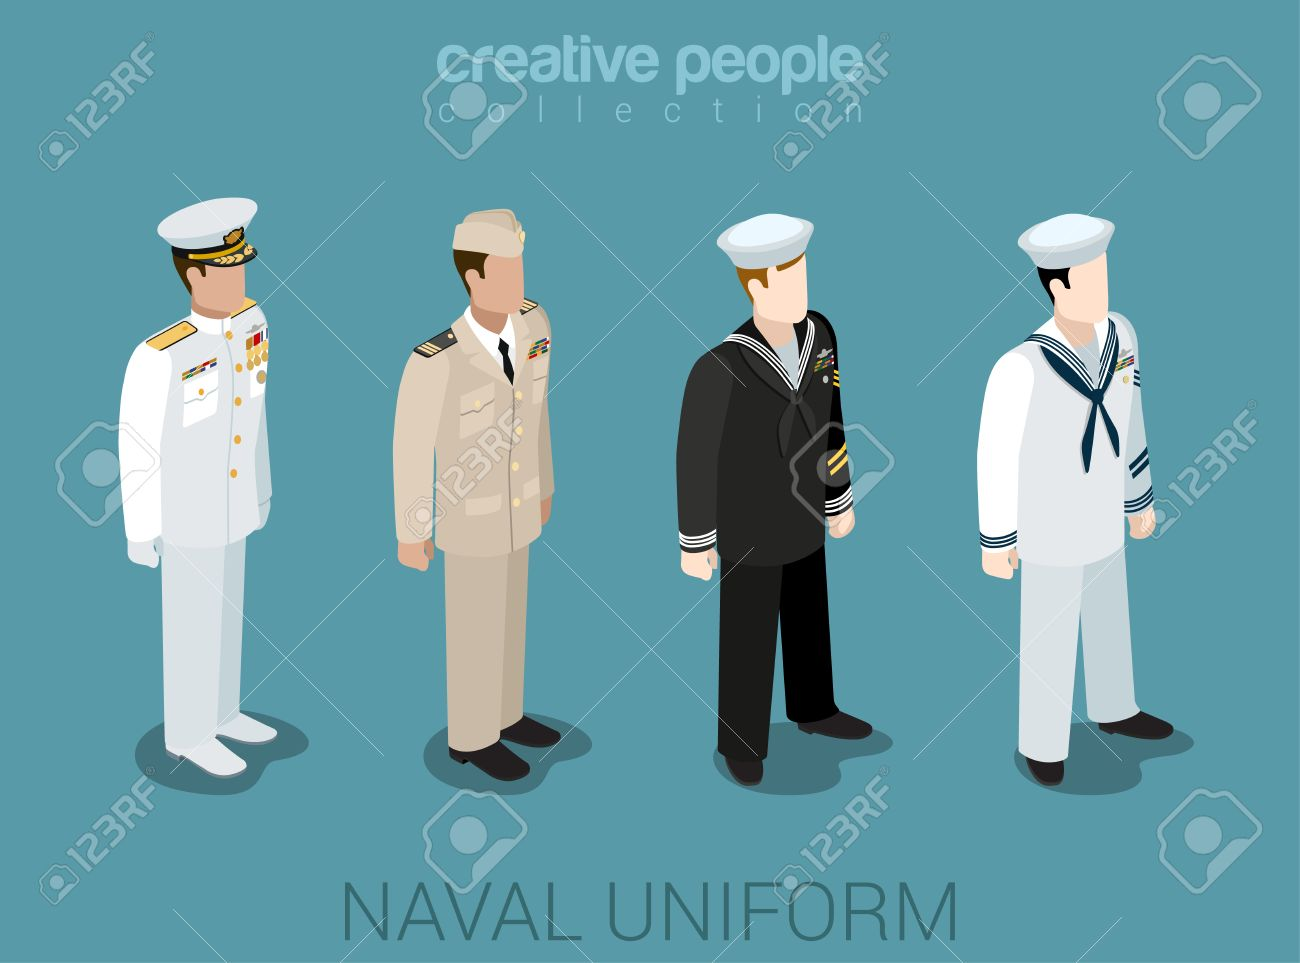 Naval Military People In Uniform Flat Isometric 3d Game Avatar